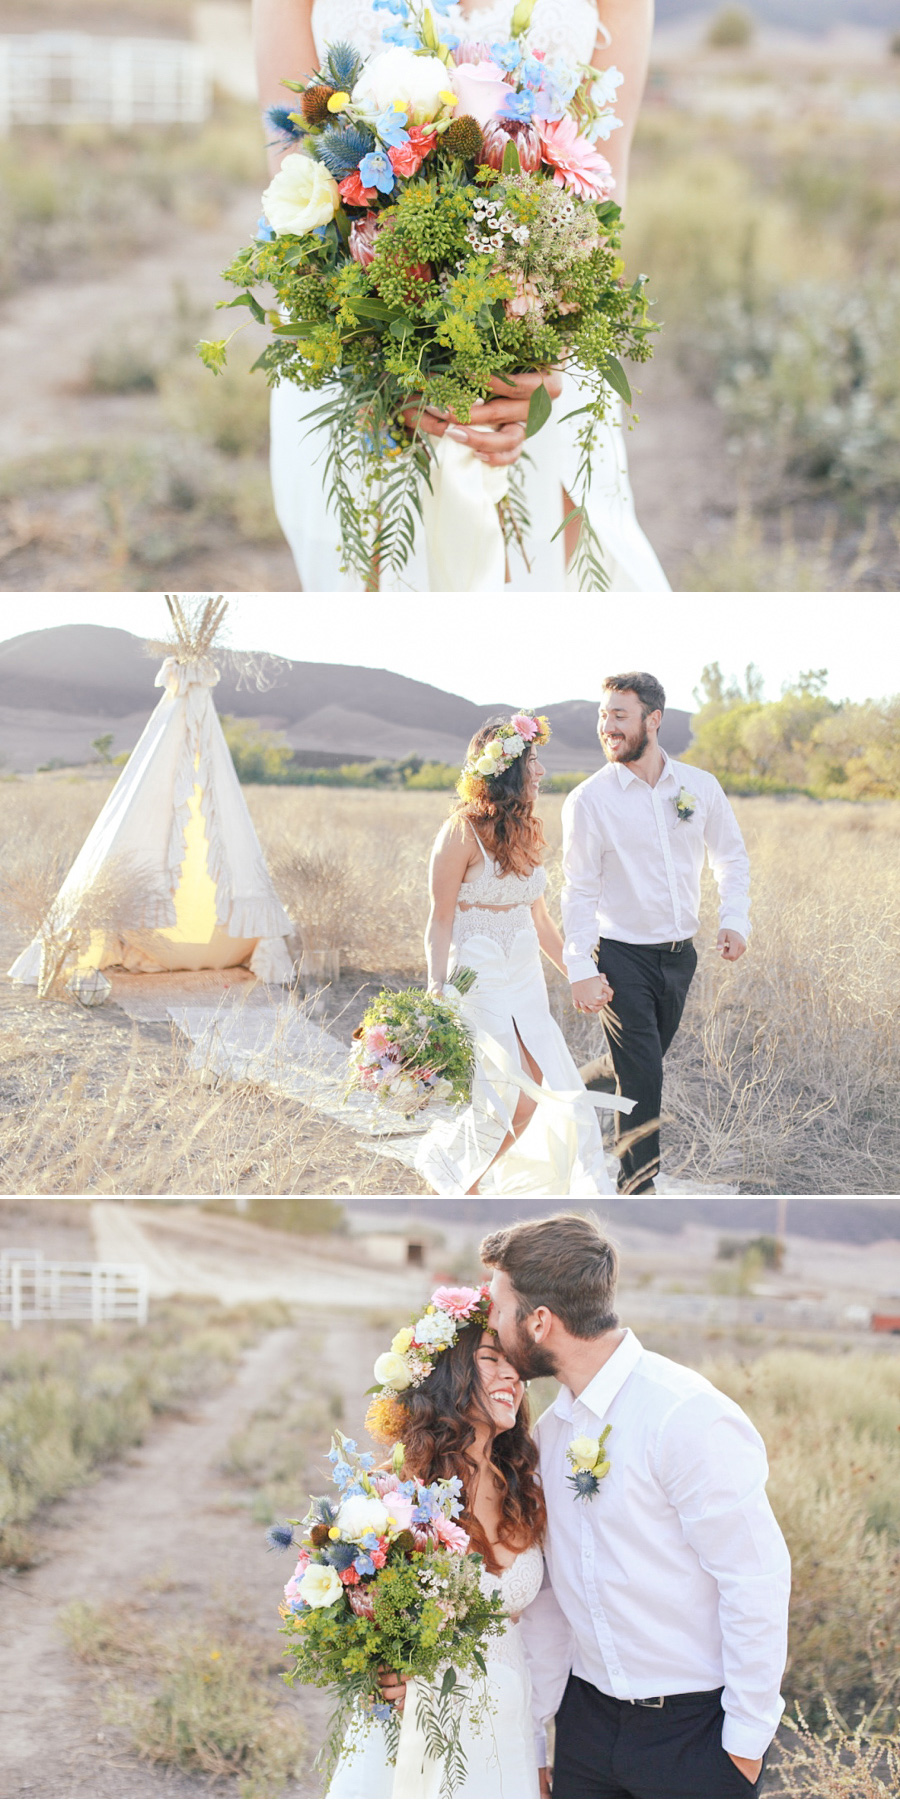 Boho Chic Inspired Wedding {styled shoot} in Ancient Greece